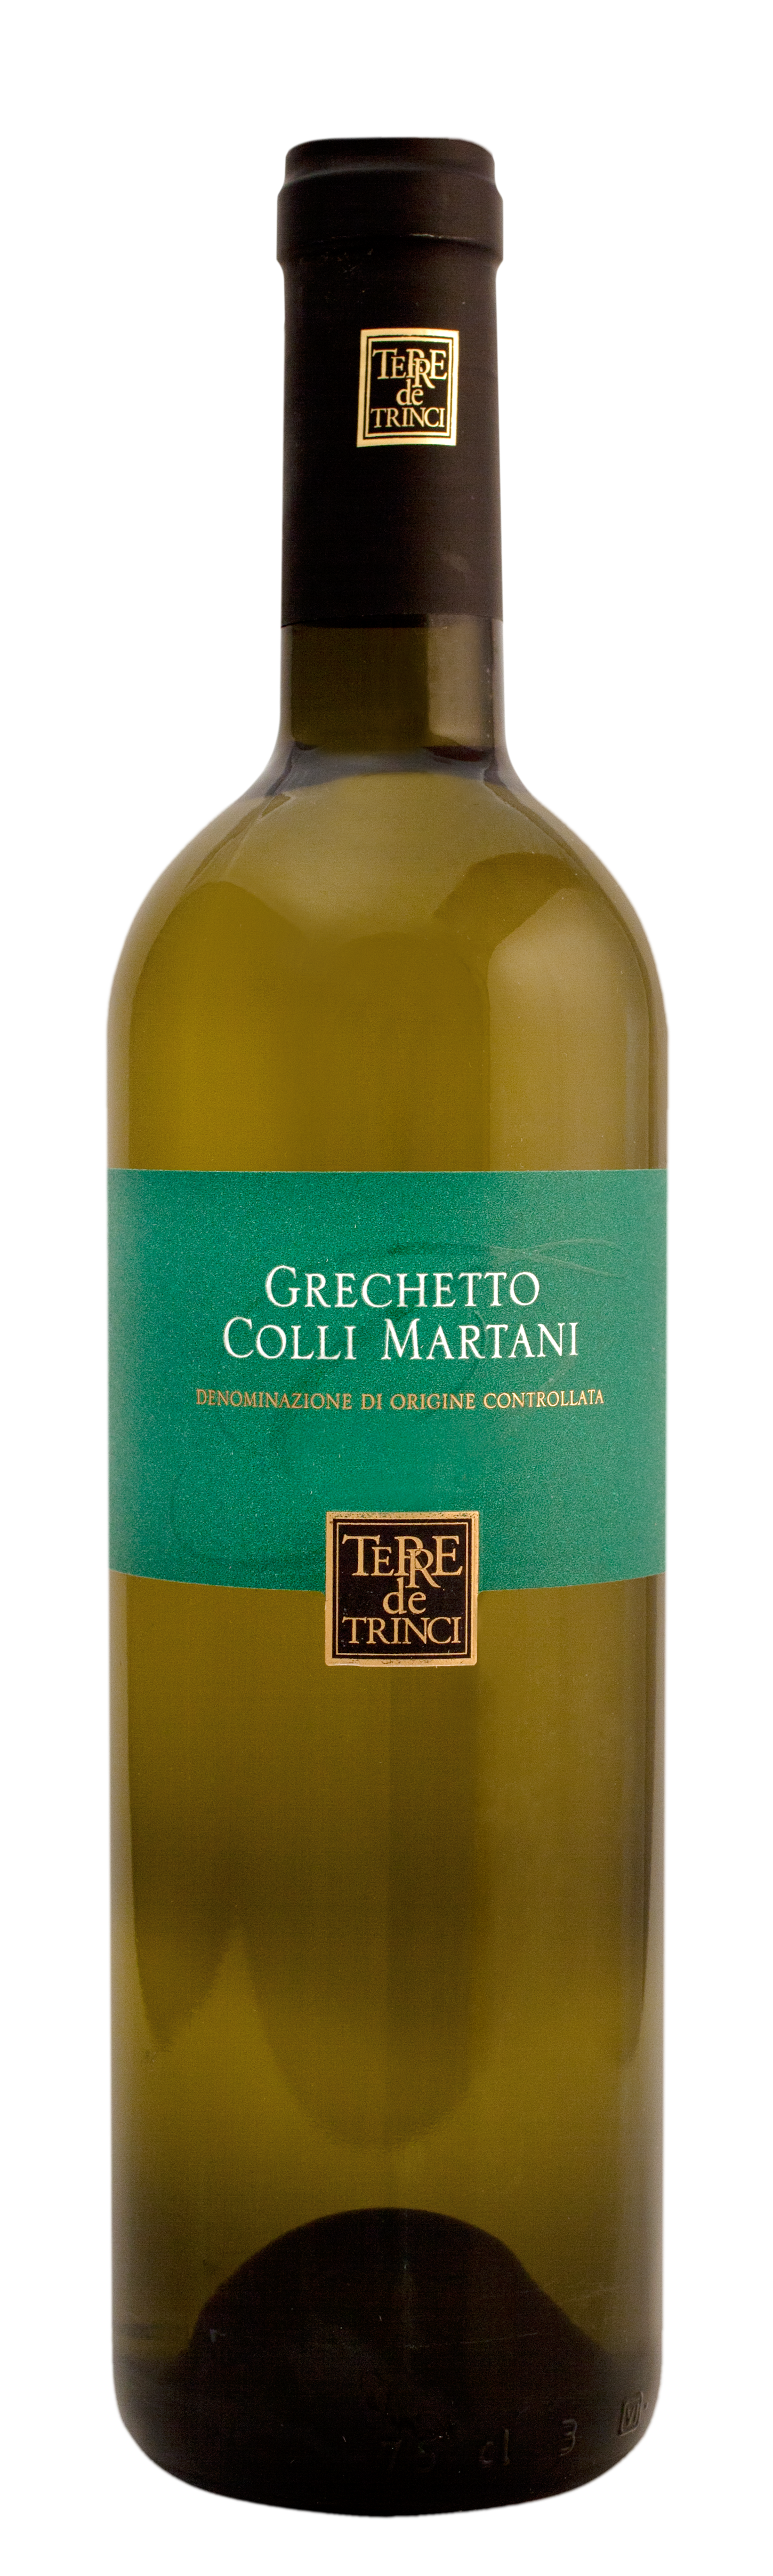 Grechetto Colli Martani